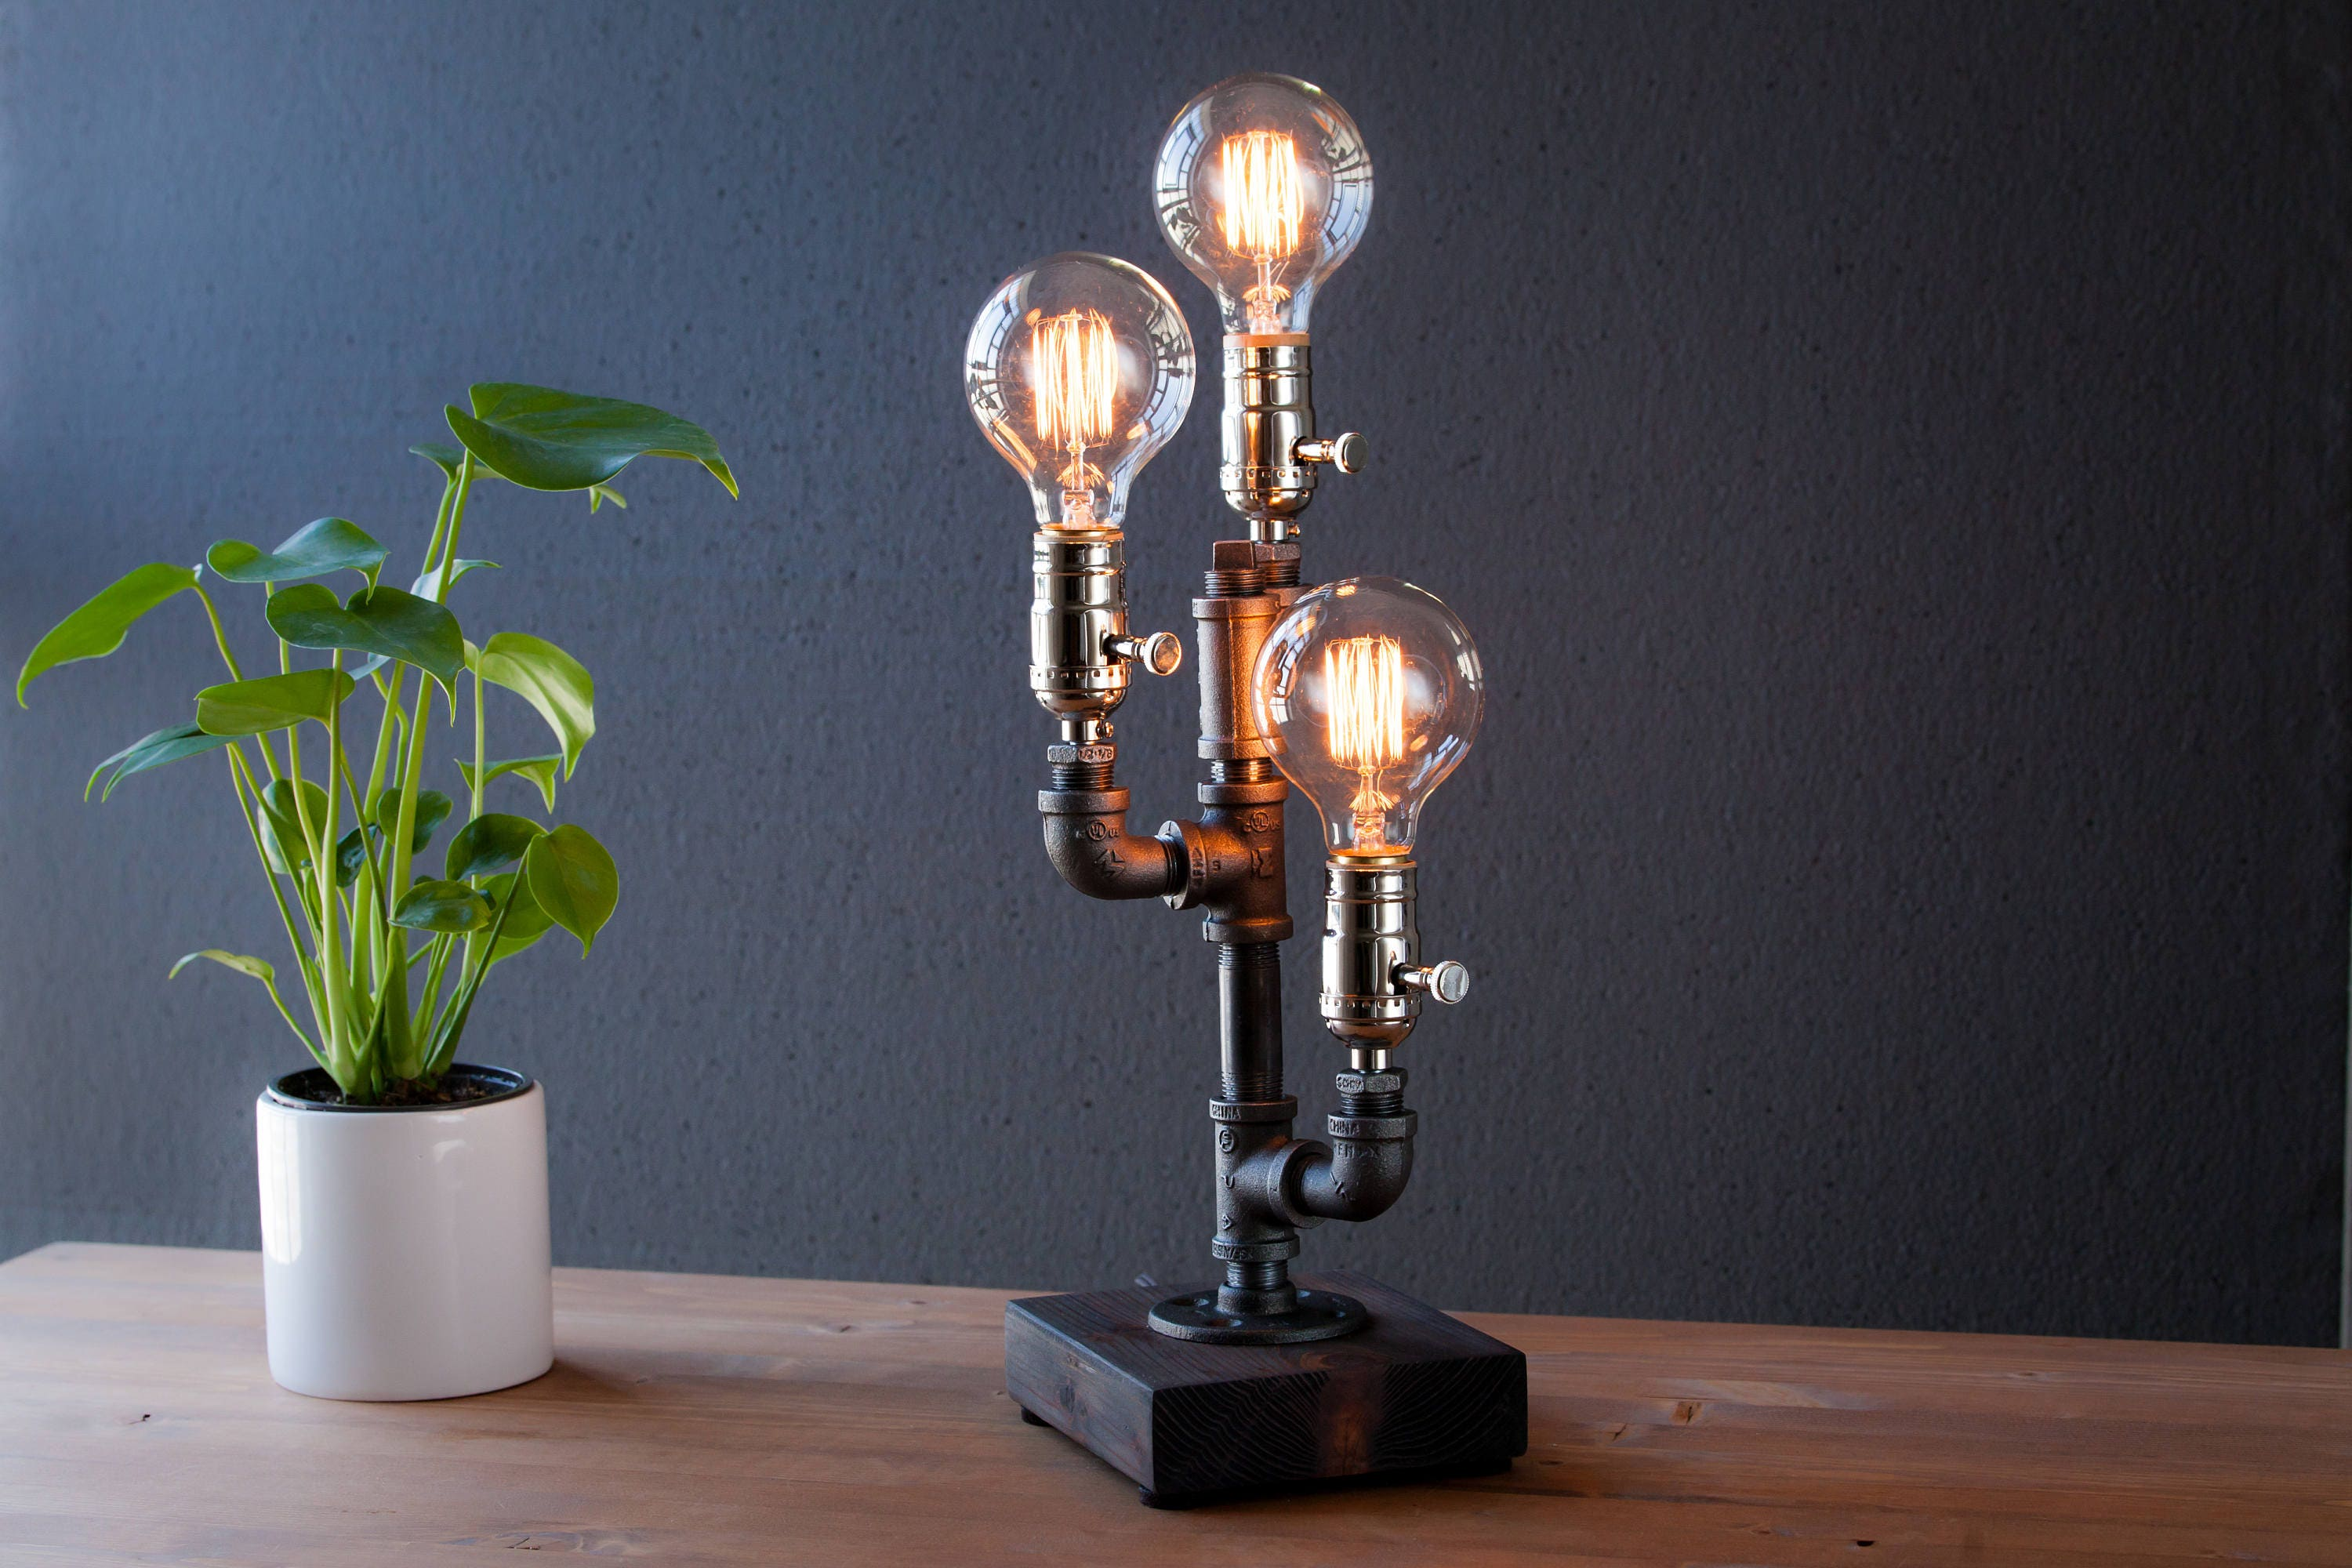 Edison lamp/Rustic decor/Table lamp/Industrial lamp/Steampunk light